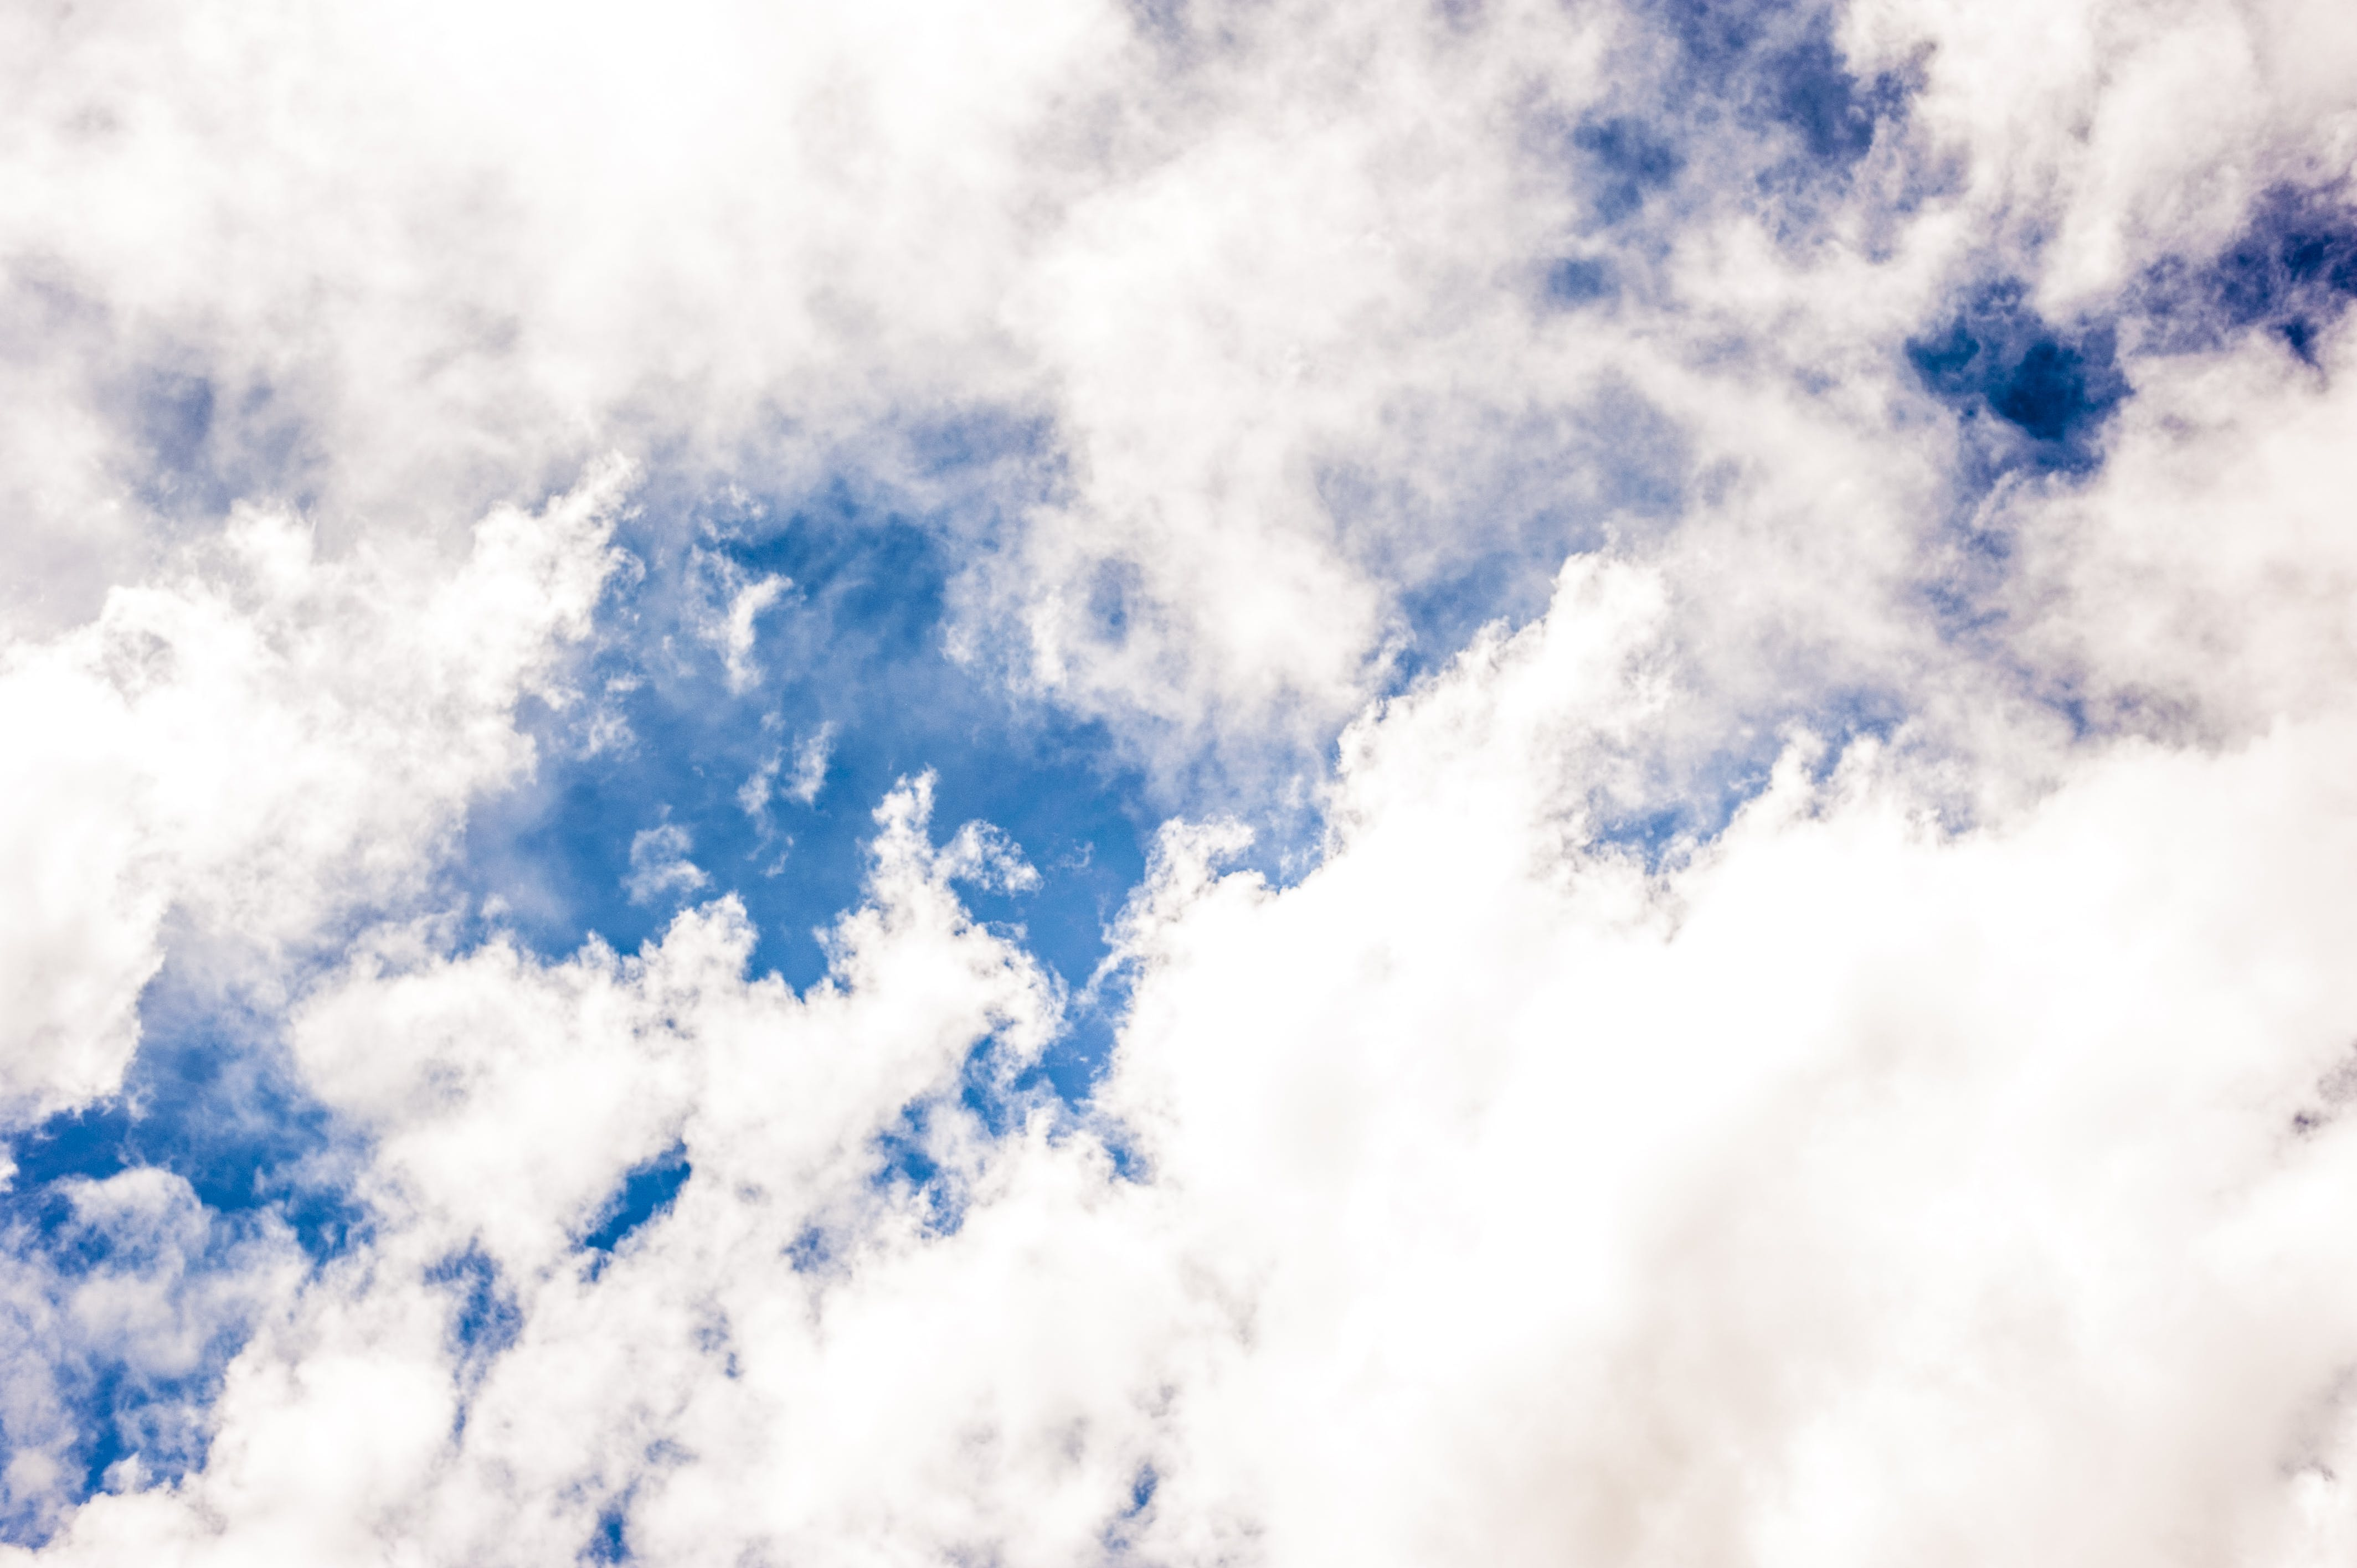 Blue Sky With White Clouds Screenshot